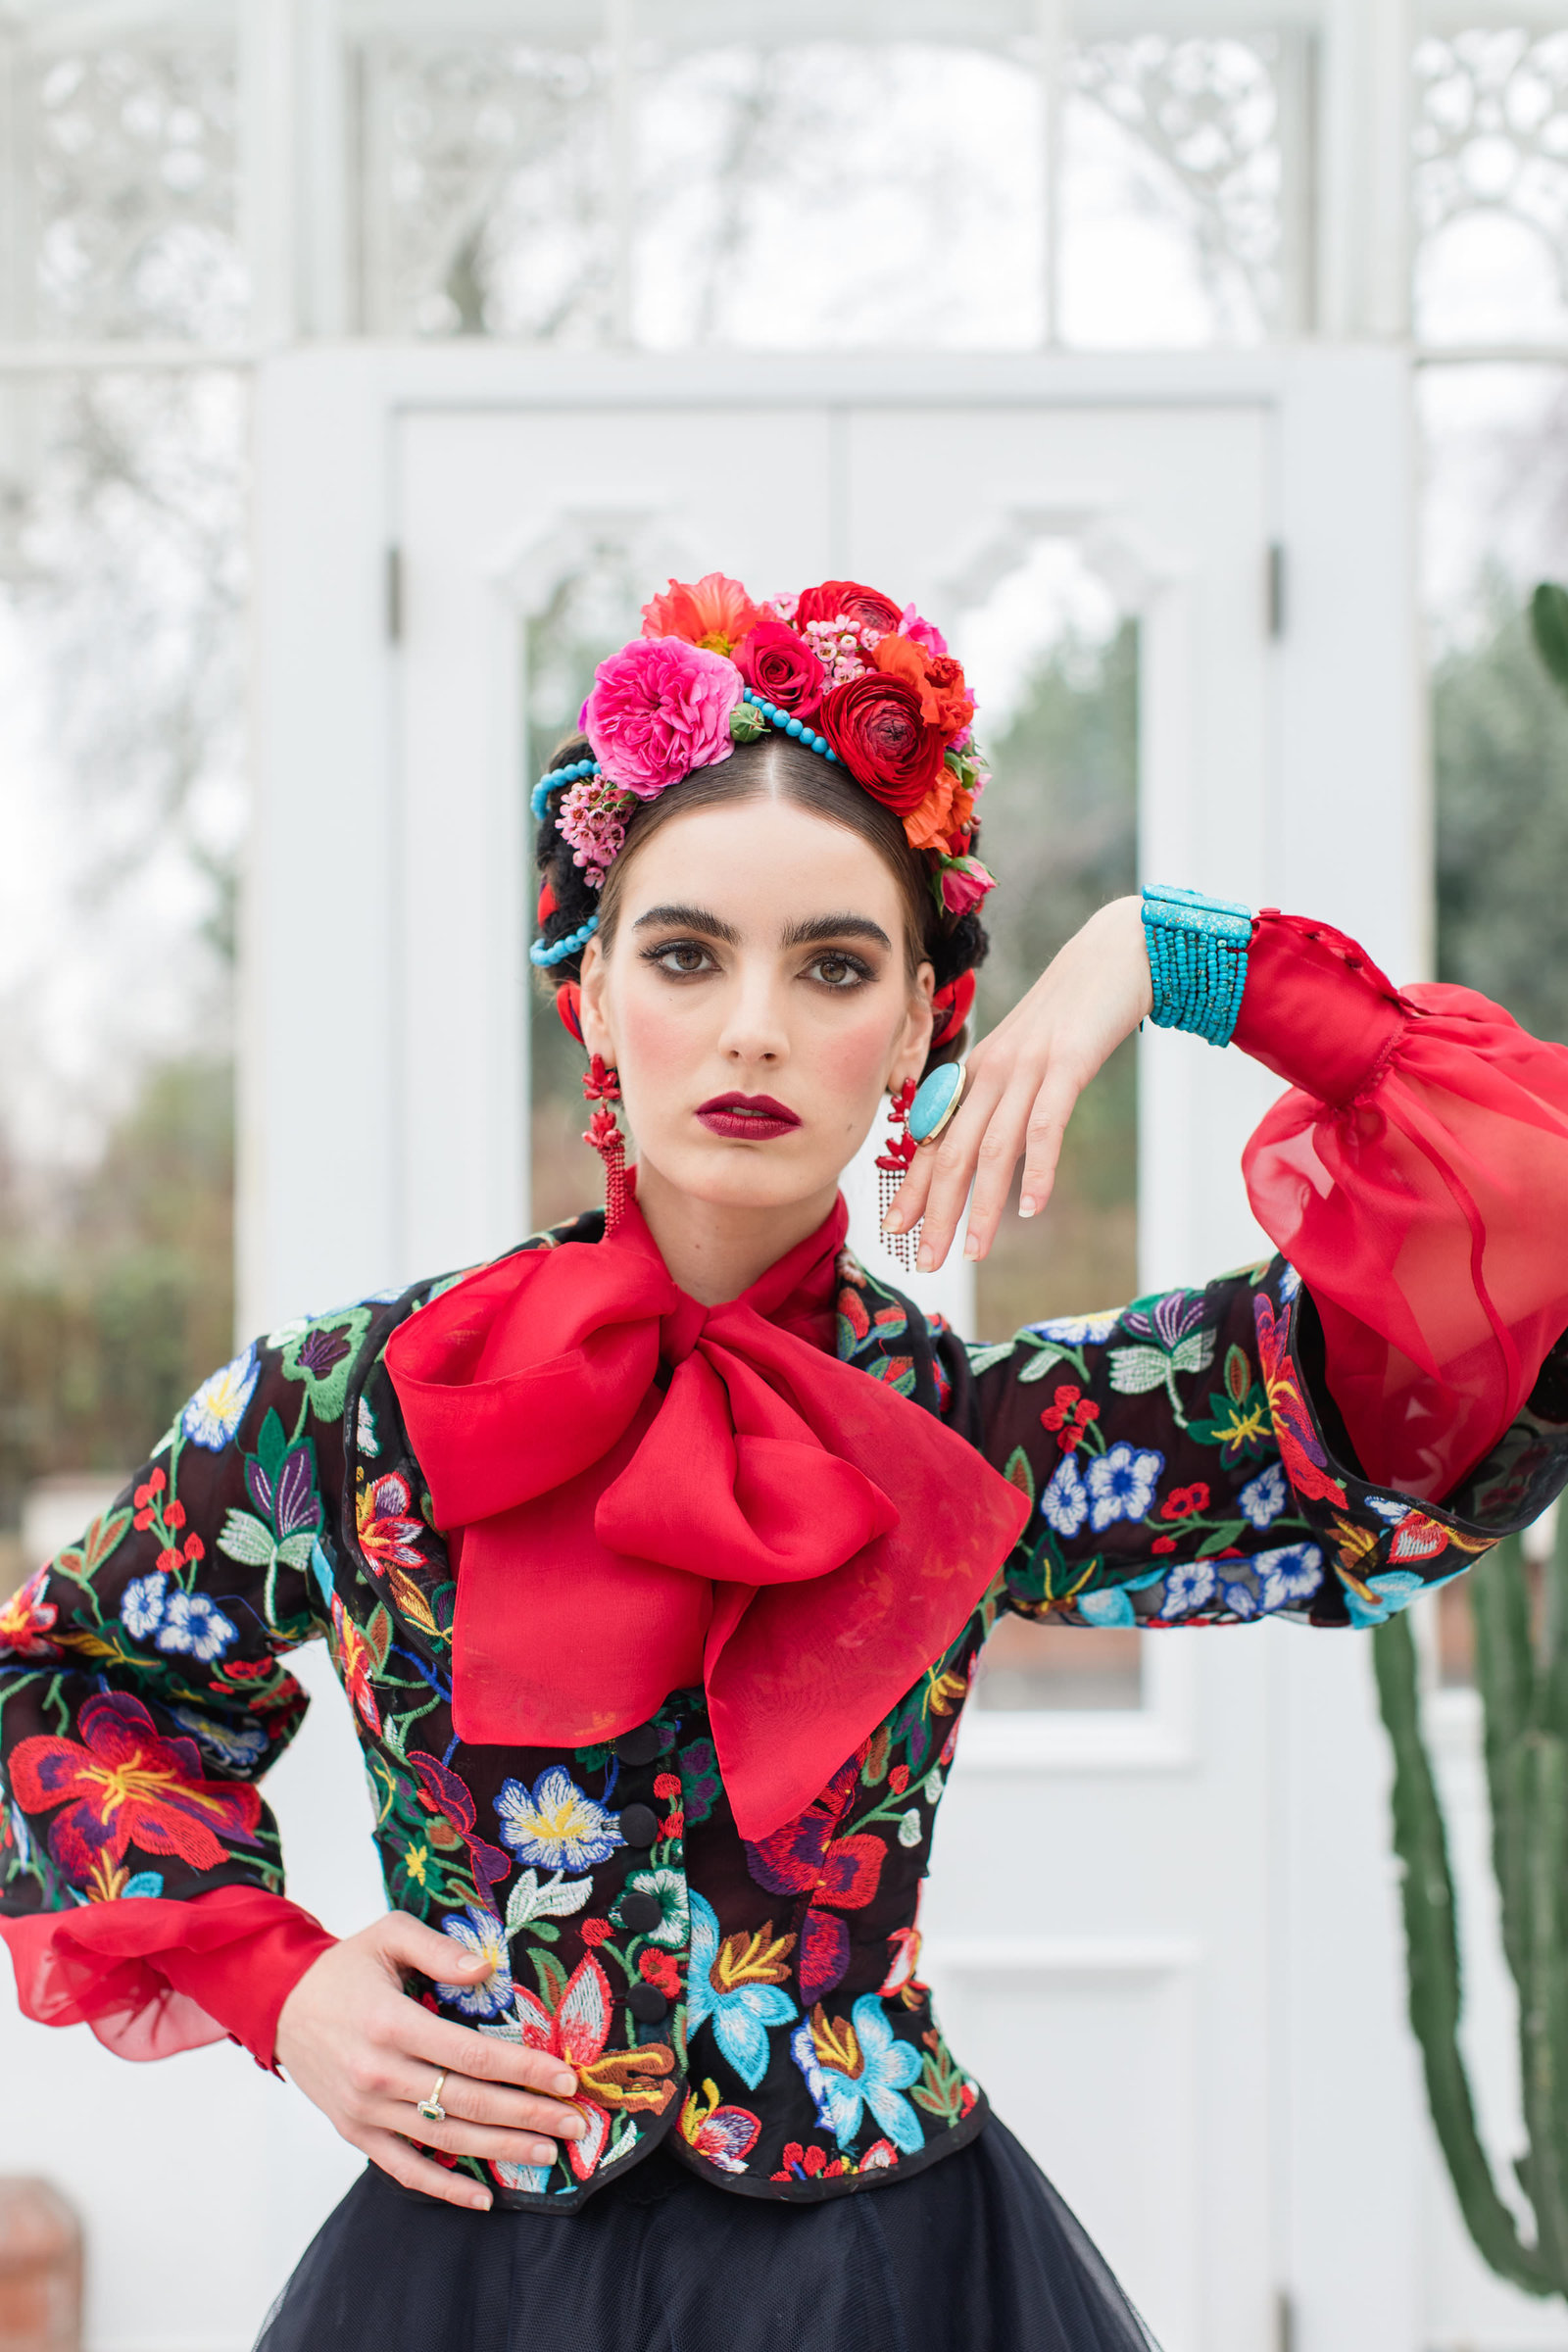 Frida-Kahlo-inspired-Mariachi-embroidered-flower-jacket-JoanneFlemingDesign-RobertaFacchiniPhoto (4)